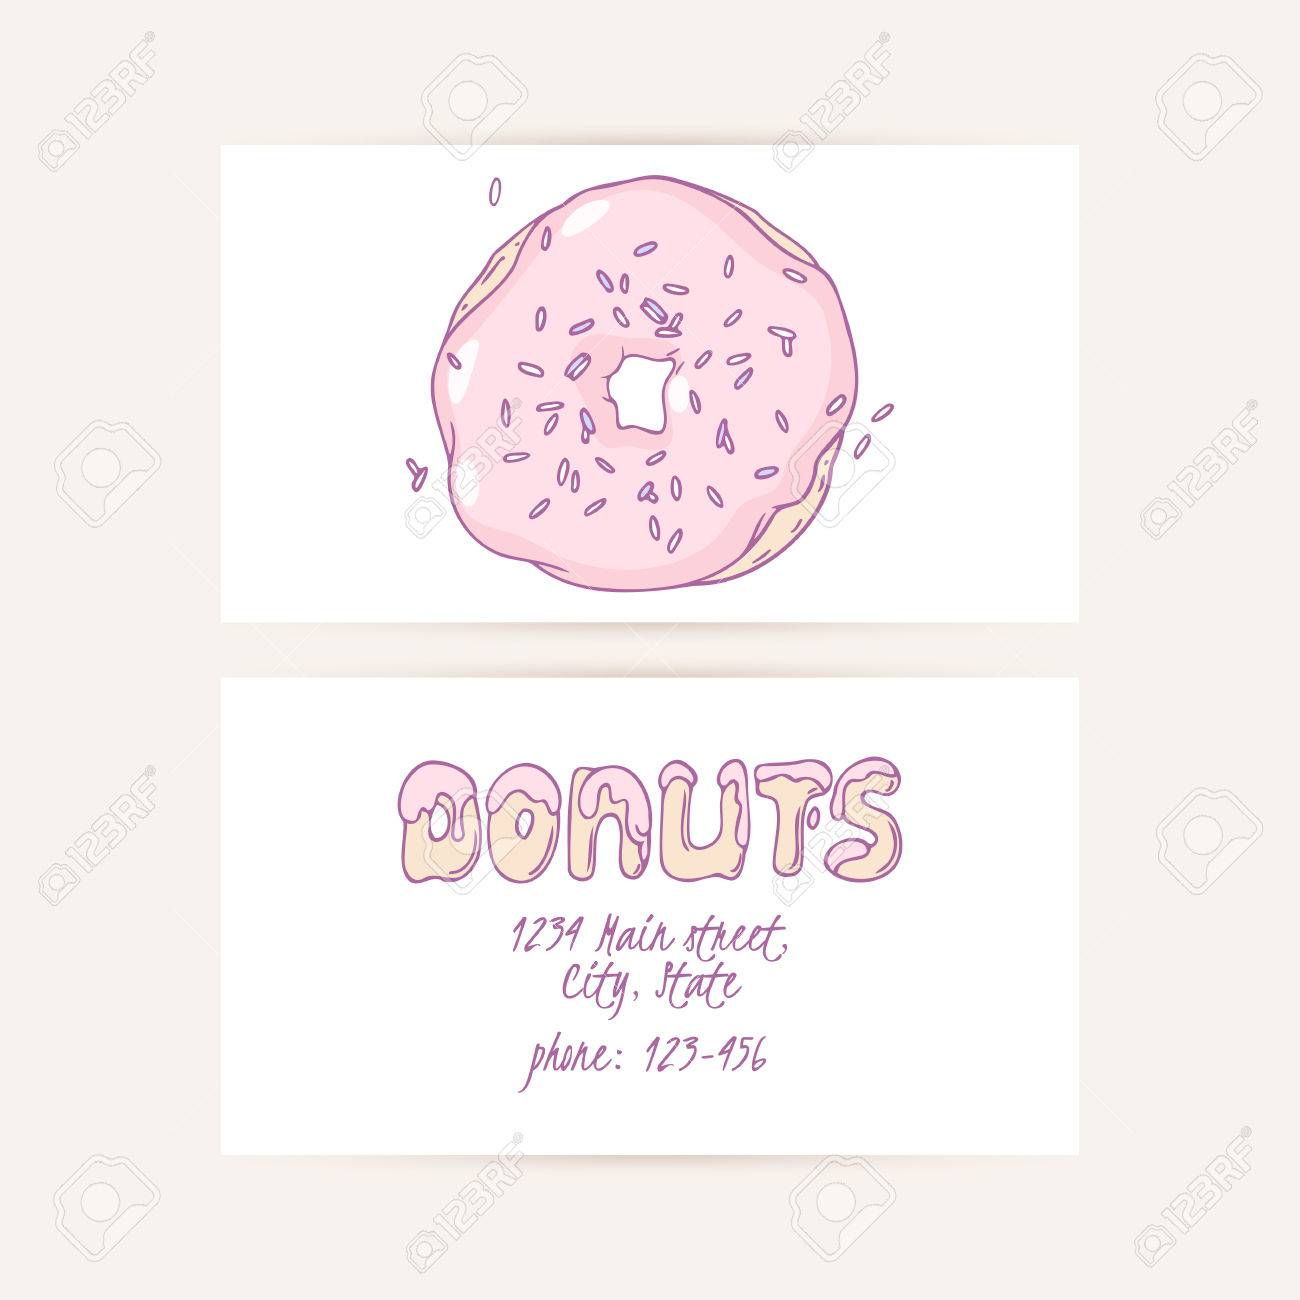 Business cards set with hand drawn cake and place for text donut business cards set with hand drawn cake and place for text donut shop logo reheart Choice Image